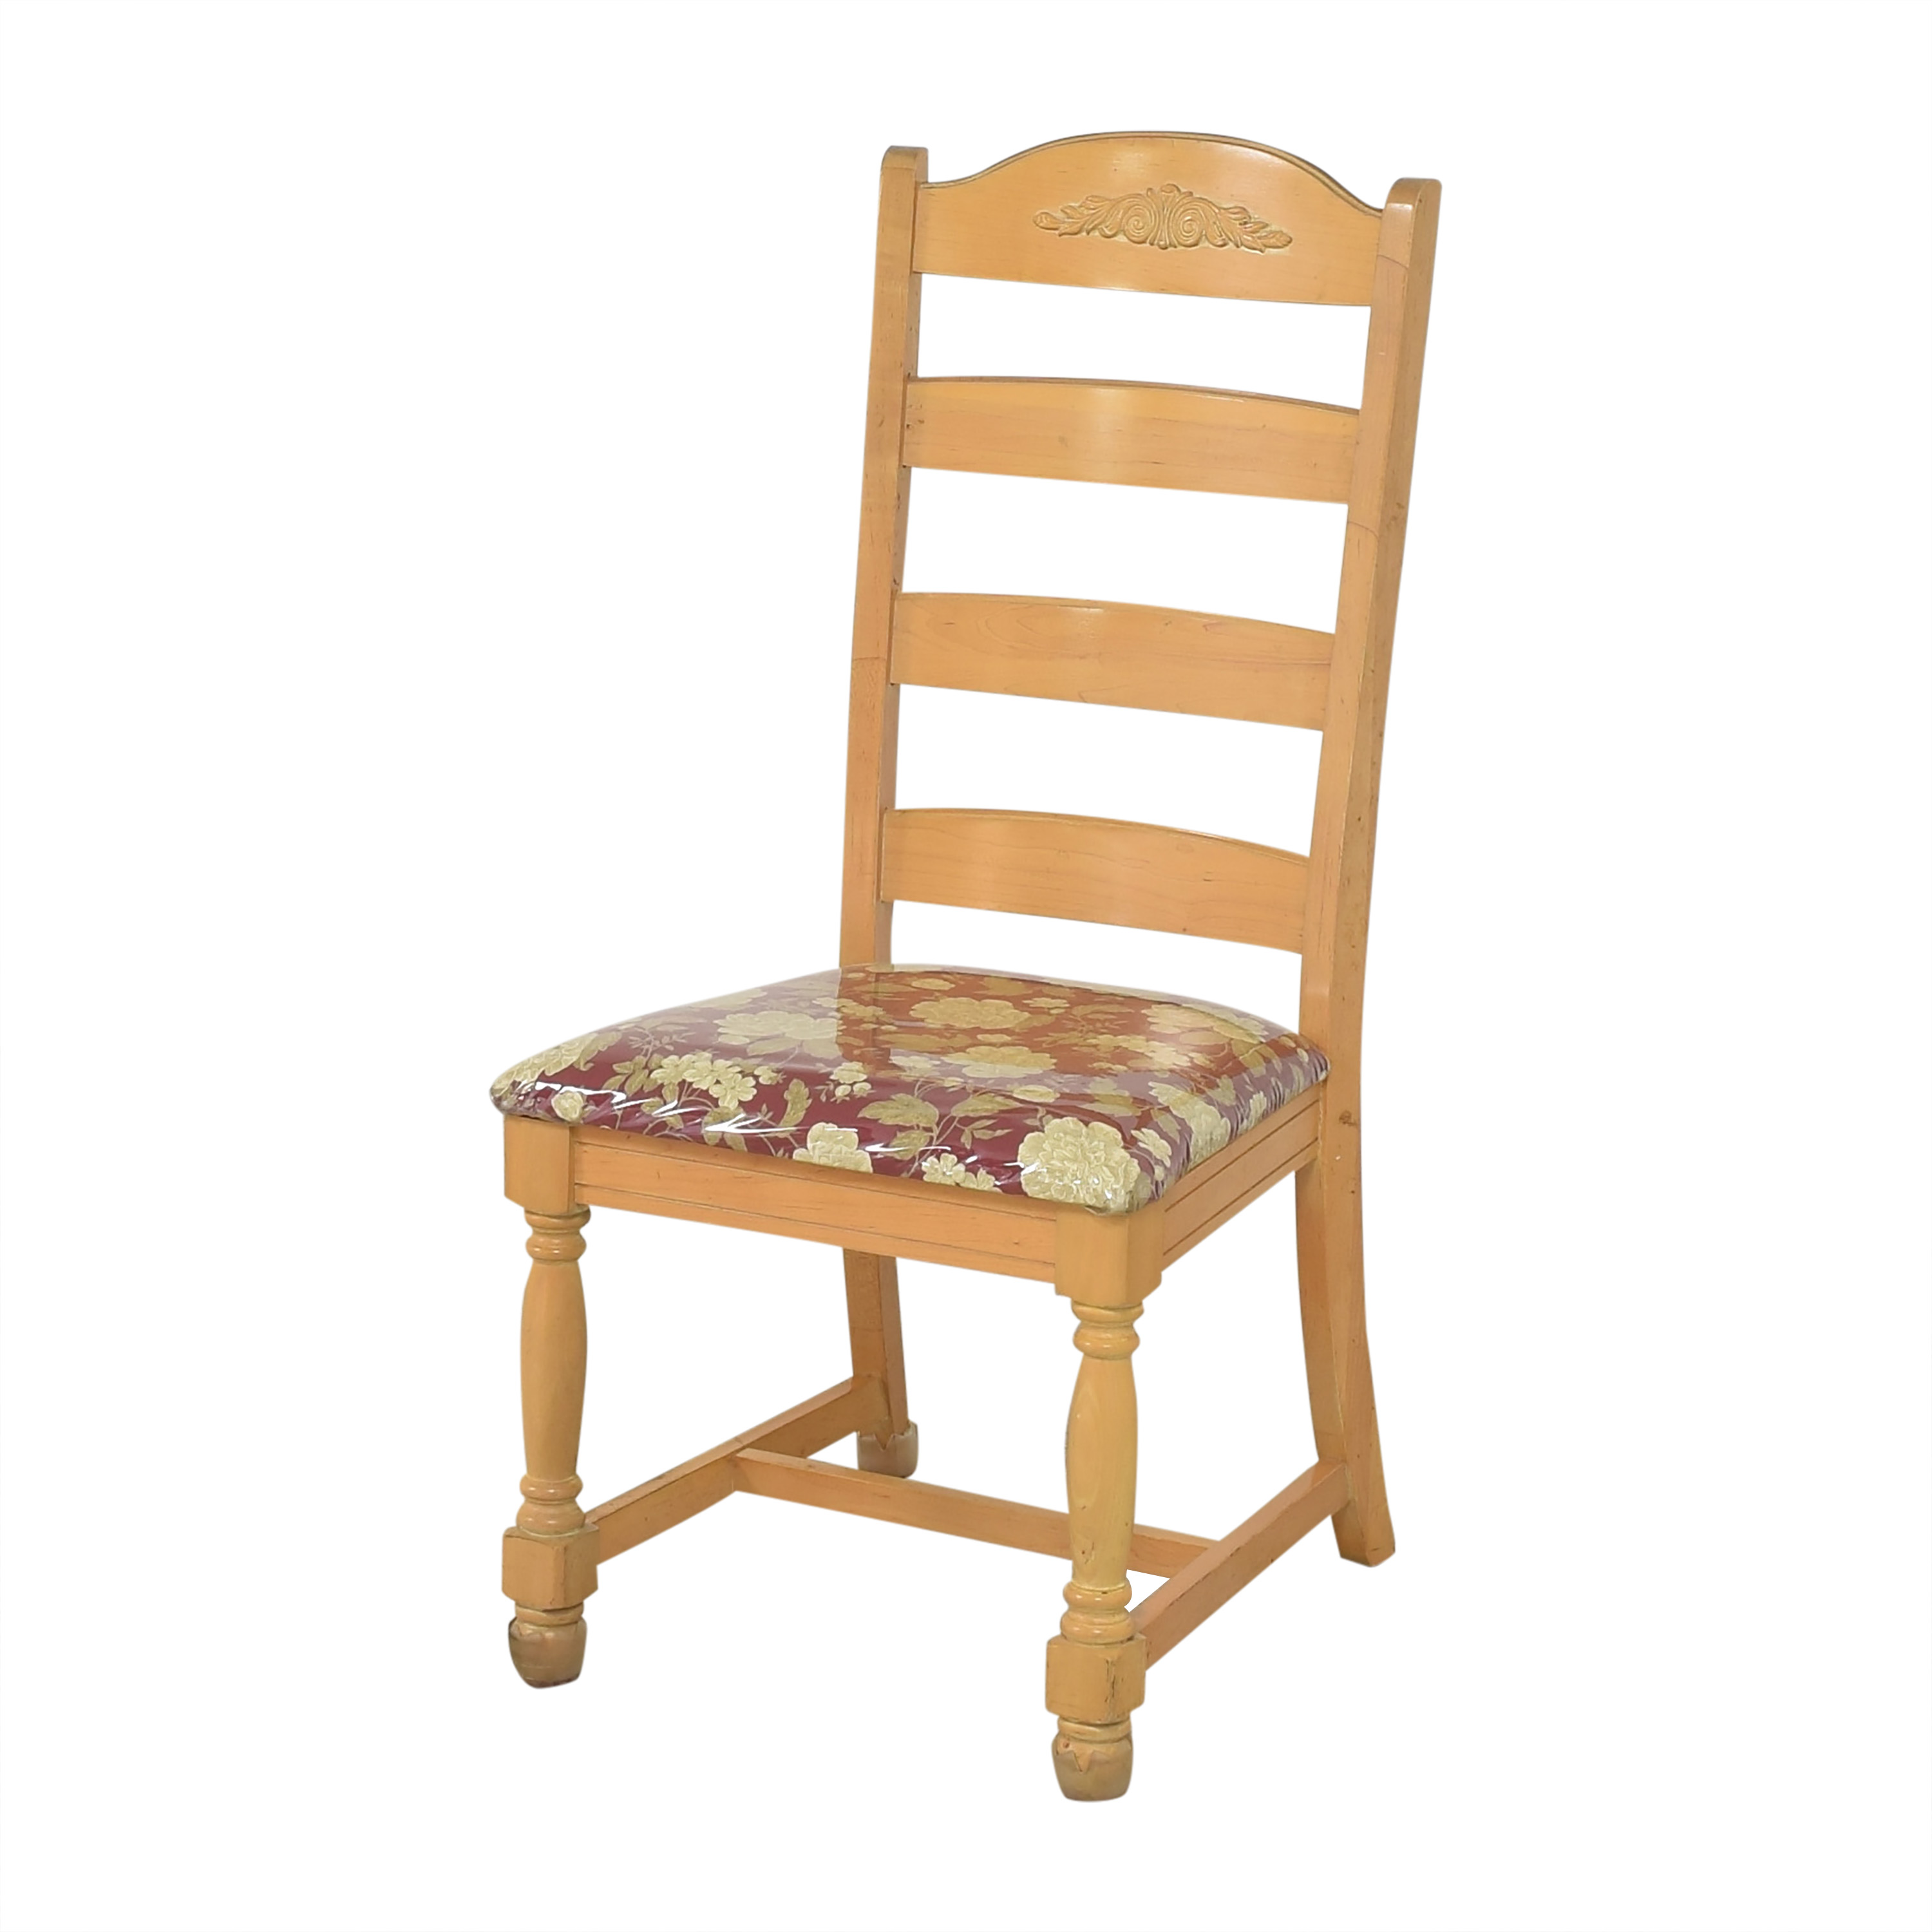 Broyhill Furniture Broyhill Ladderback Dining Chairs second hand